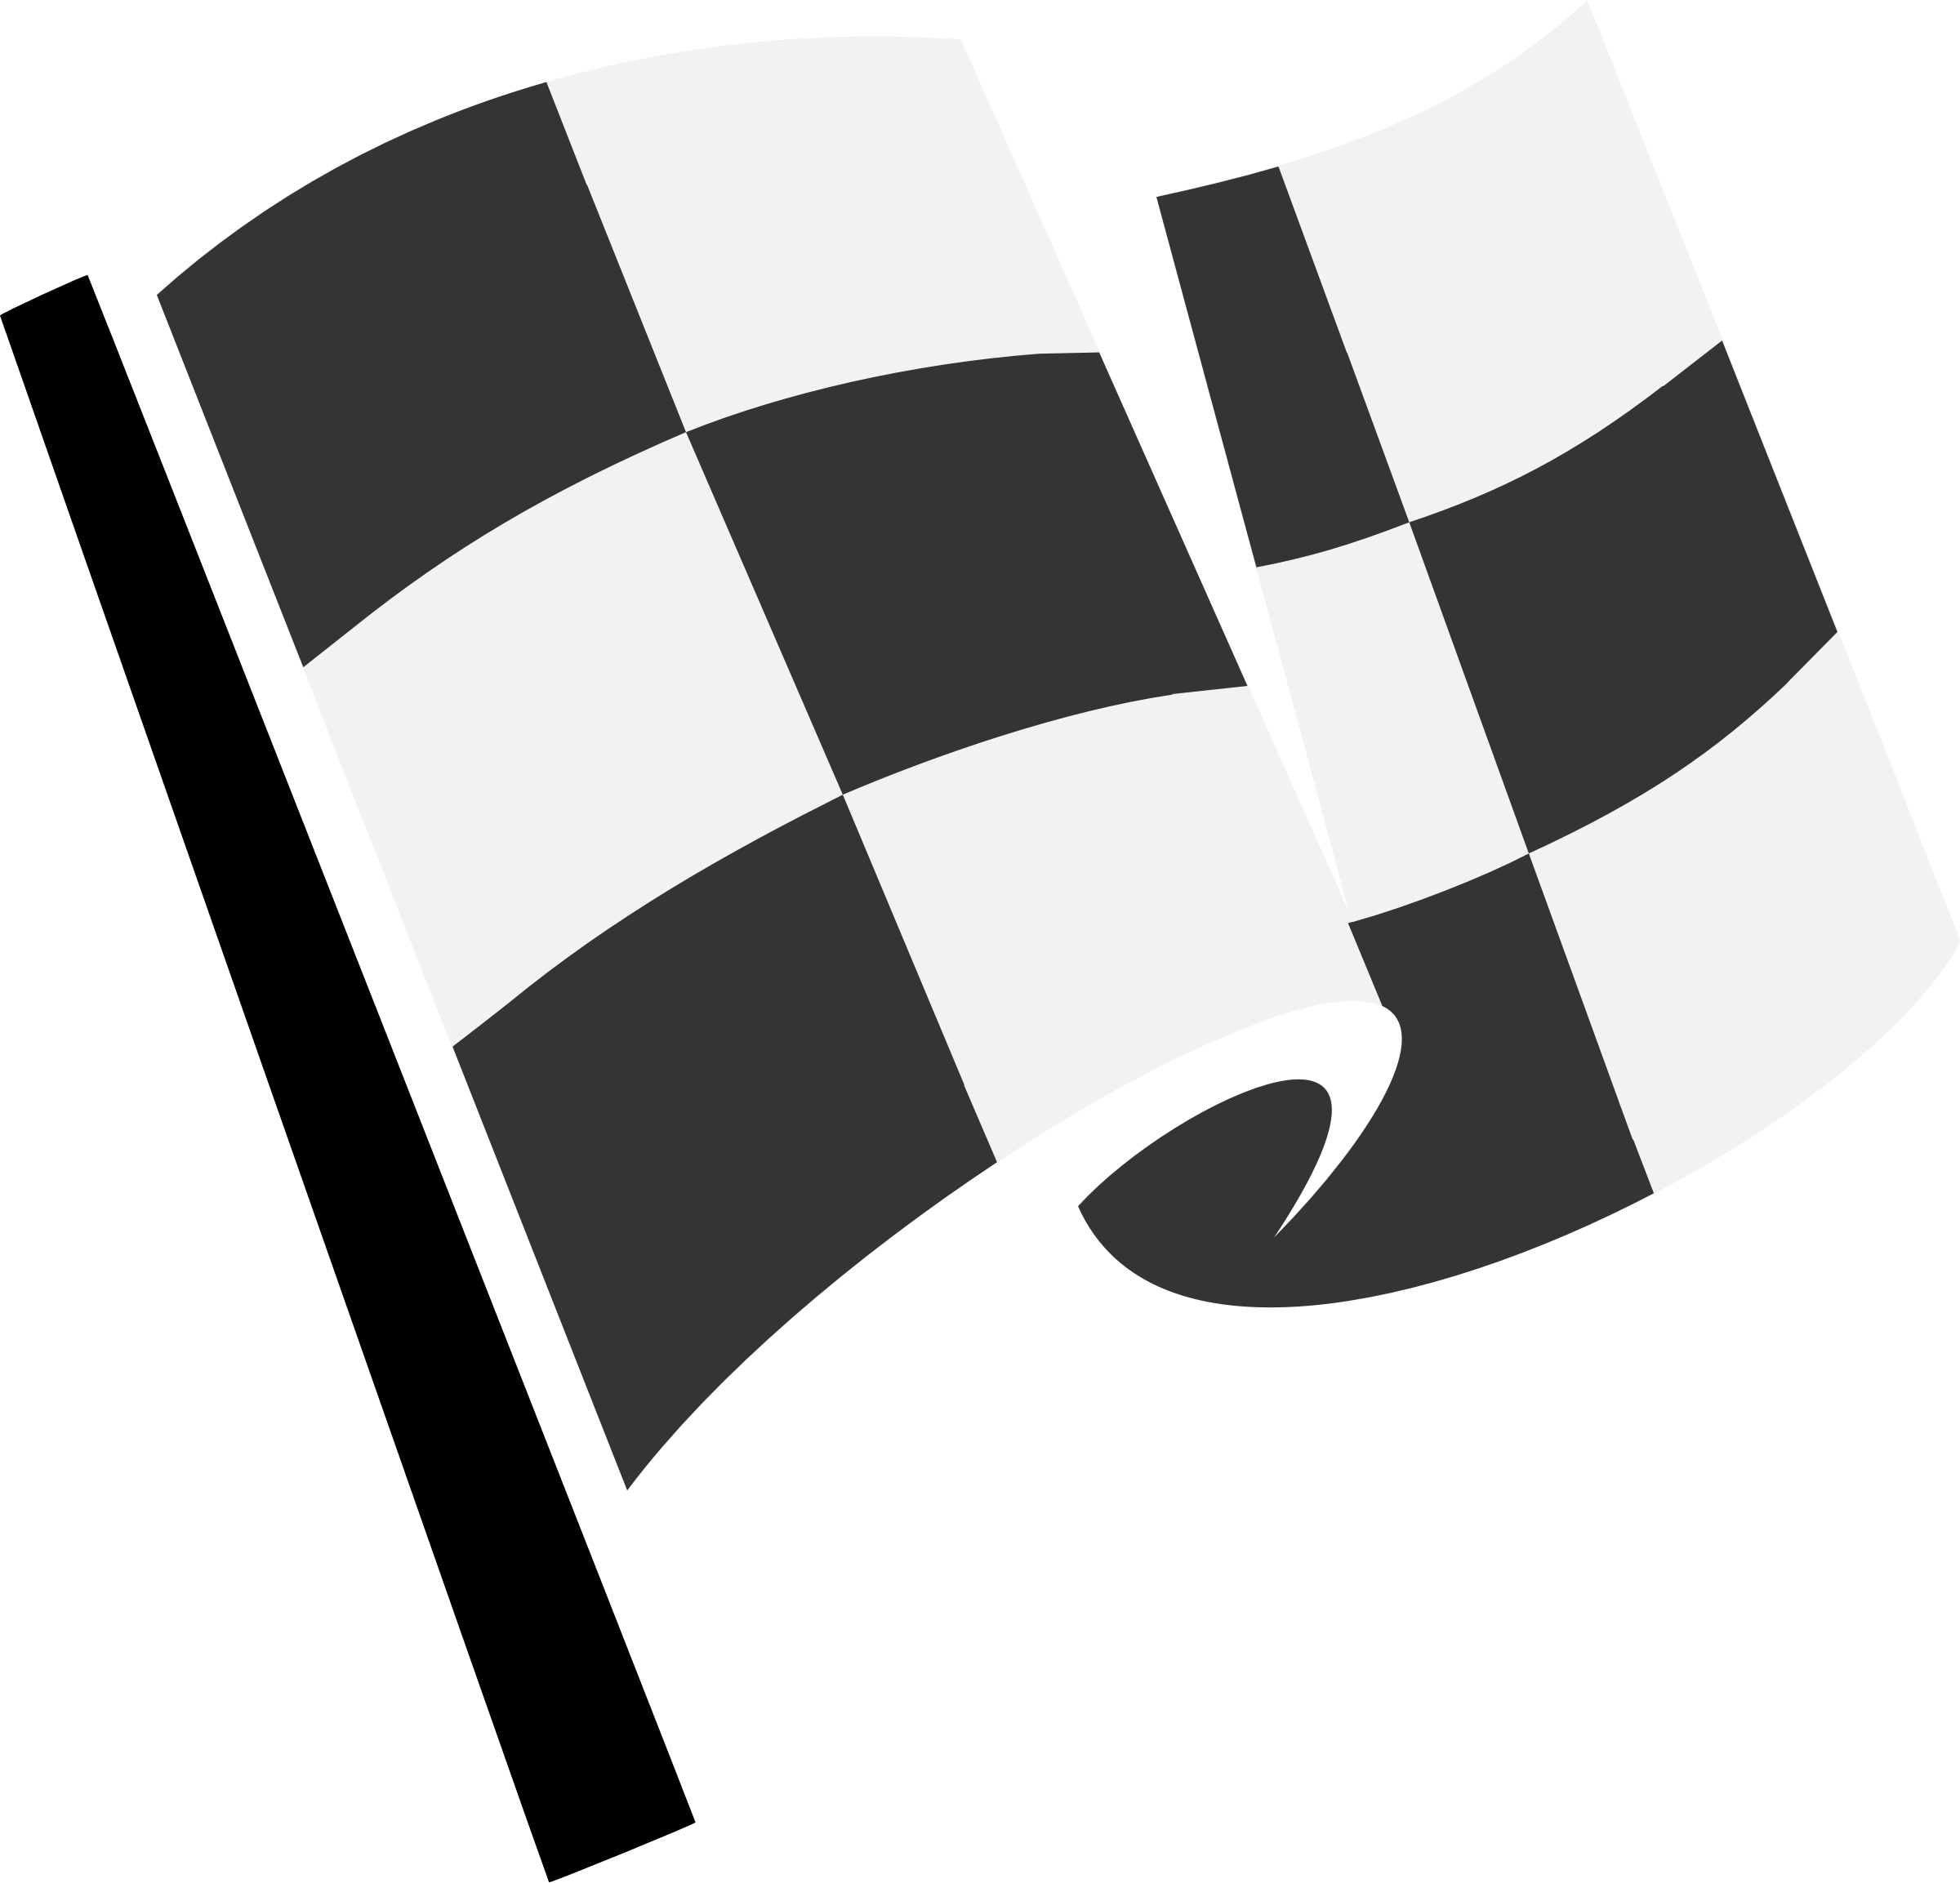 Checkered flag png. Chequered icons free and